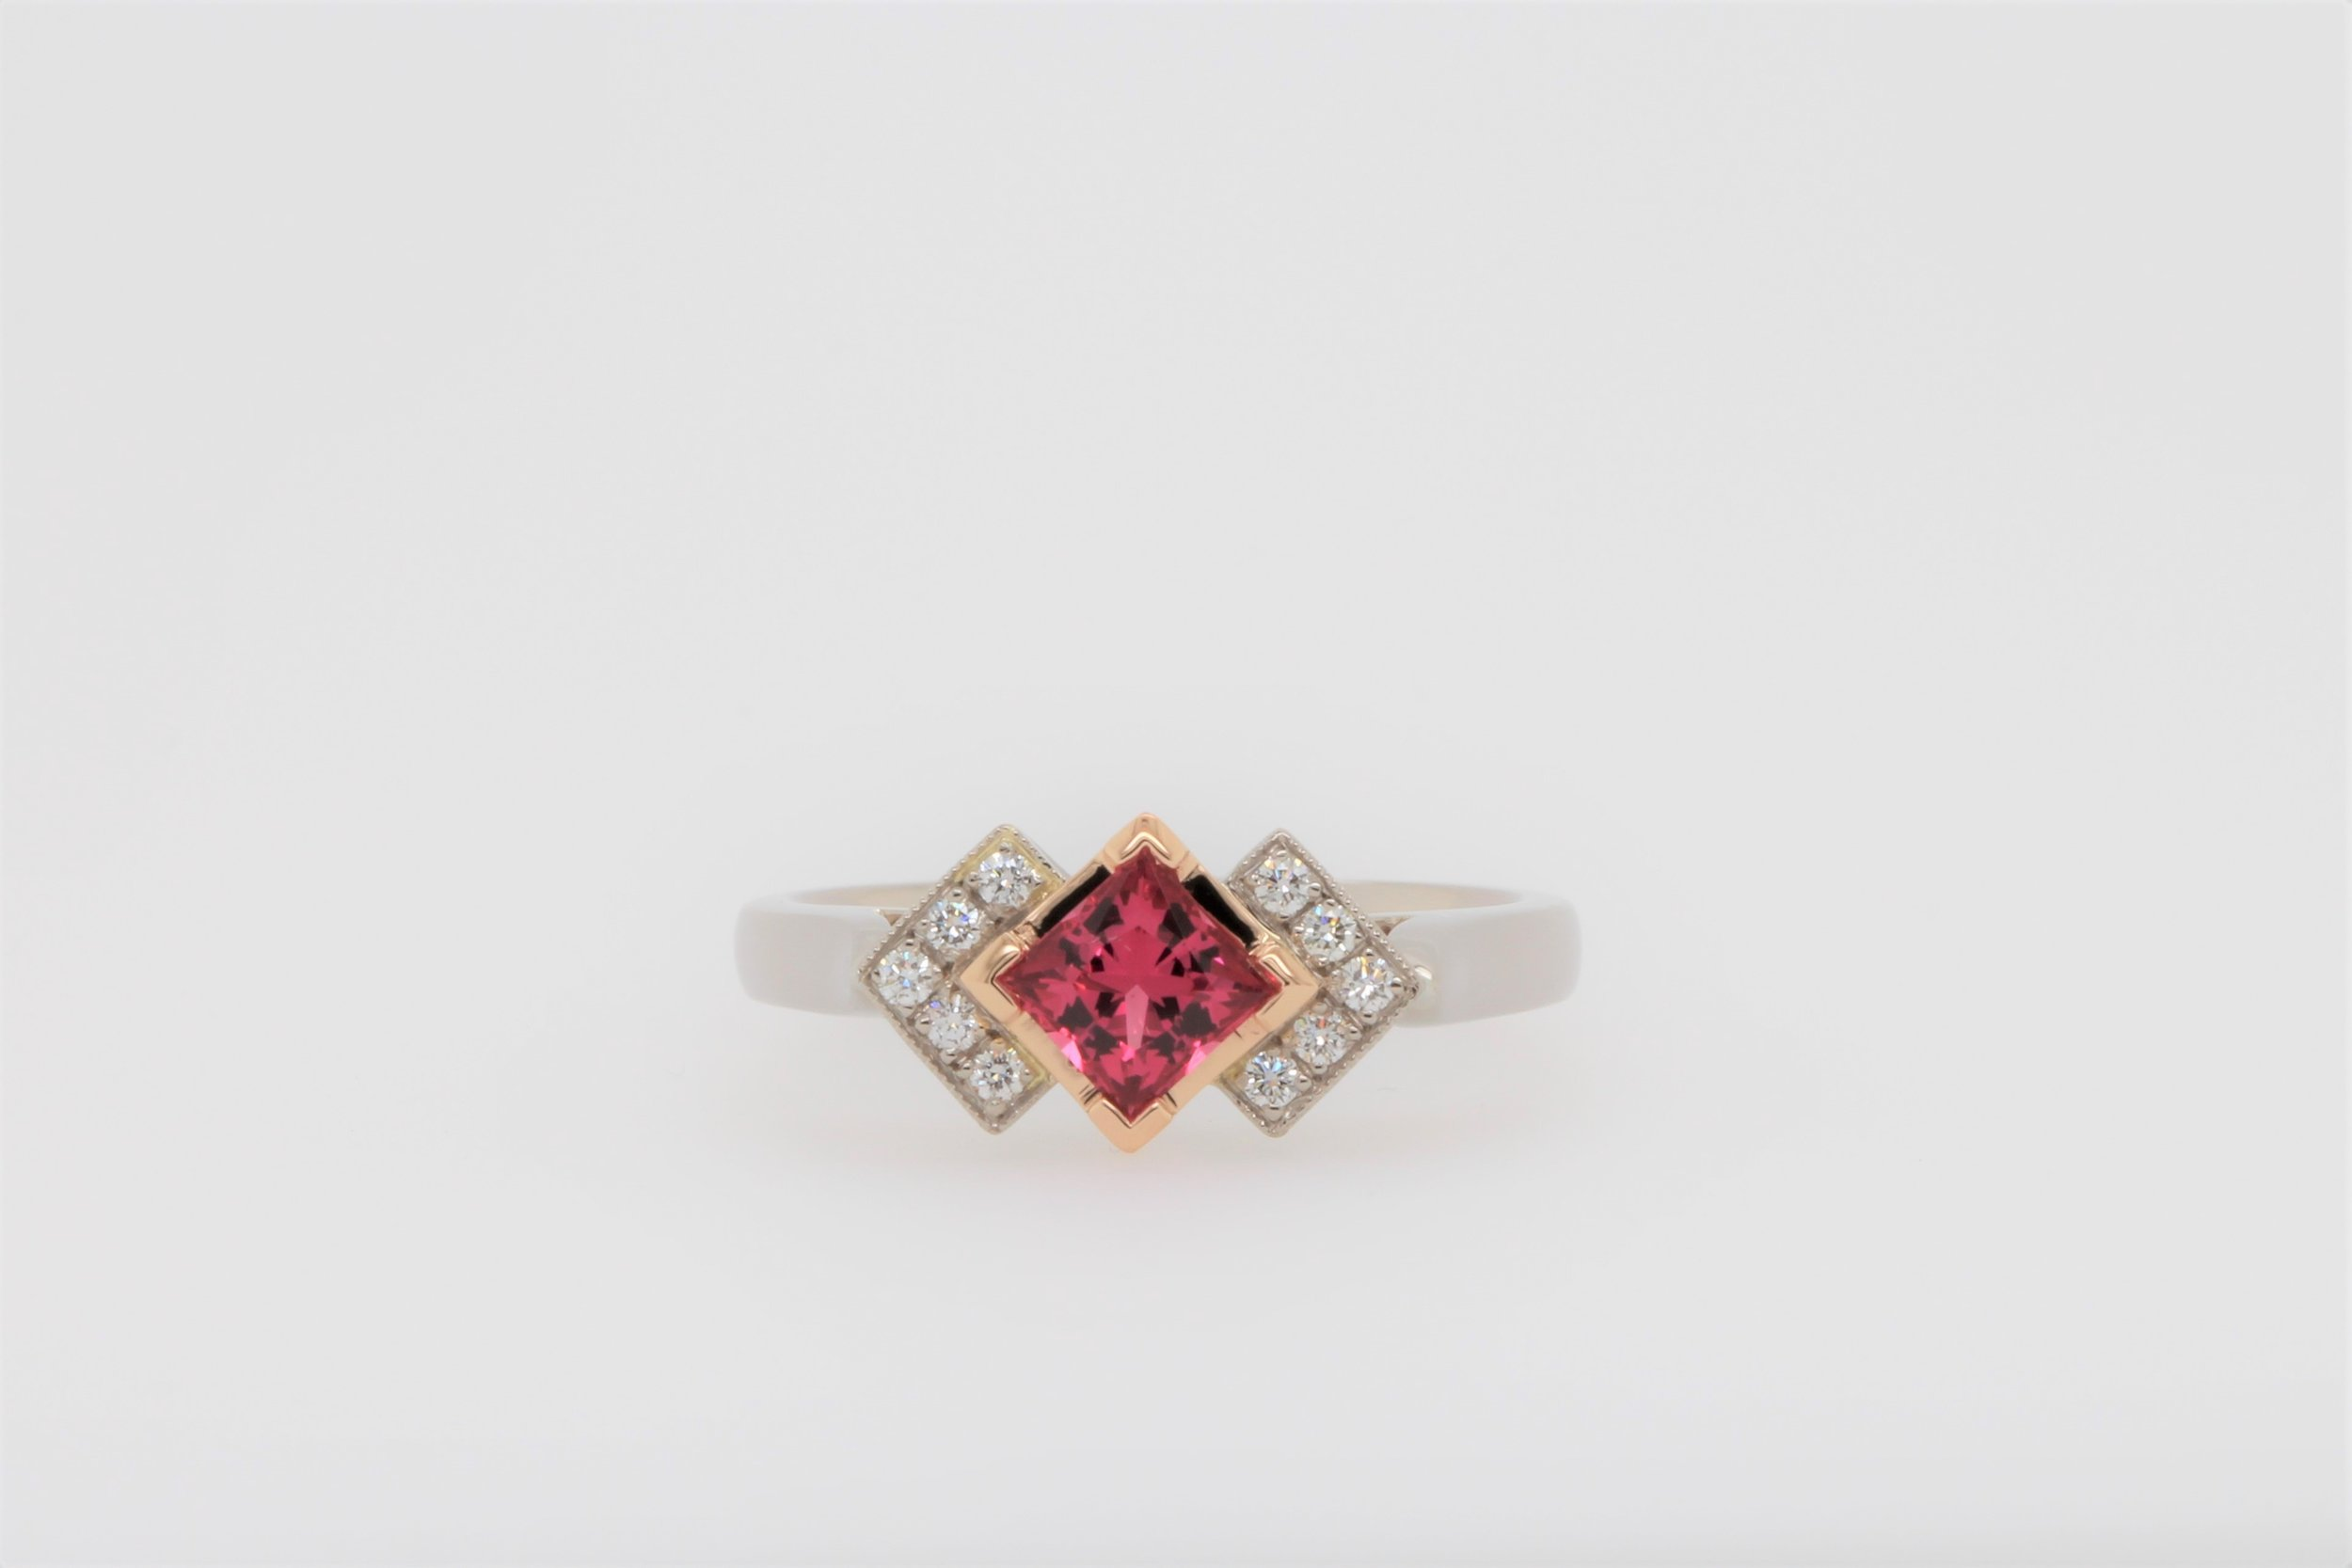 A beautiful bespoke Pink Spinel makes an elegant statement in Jess's right hand ring.